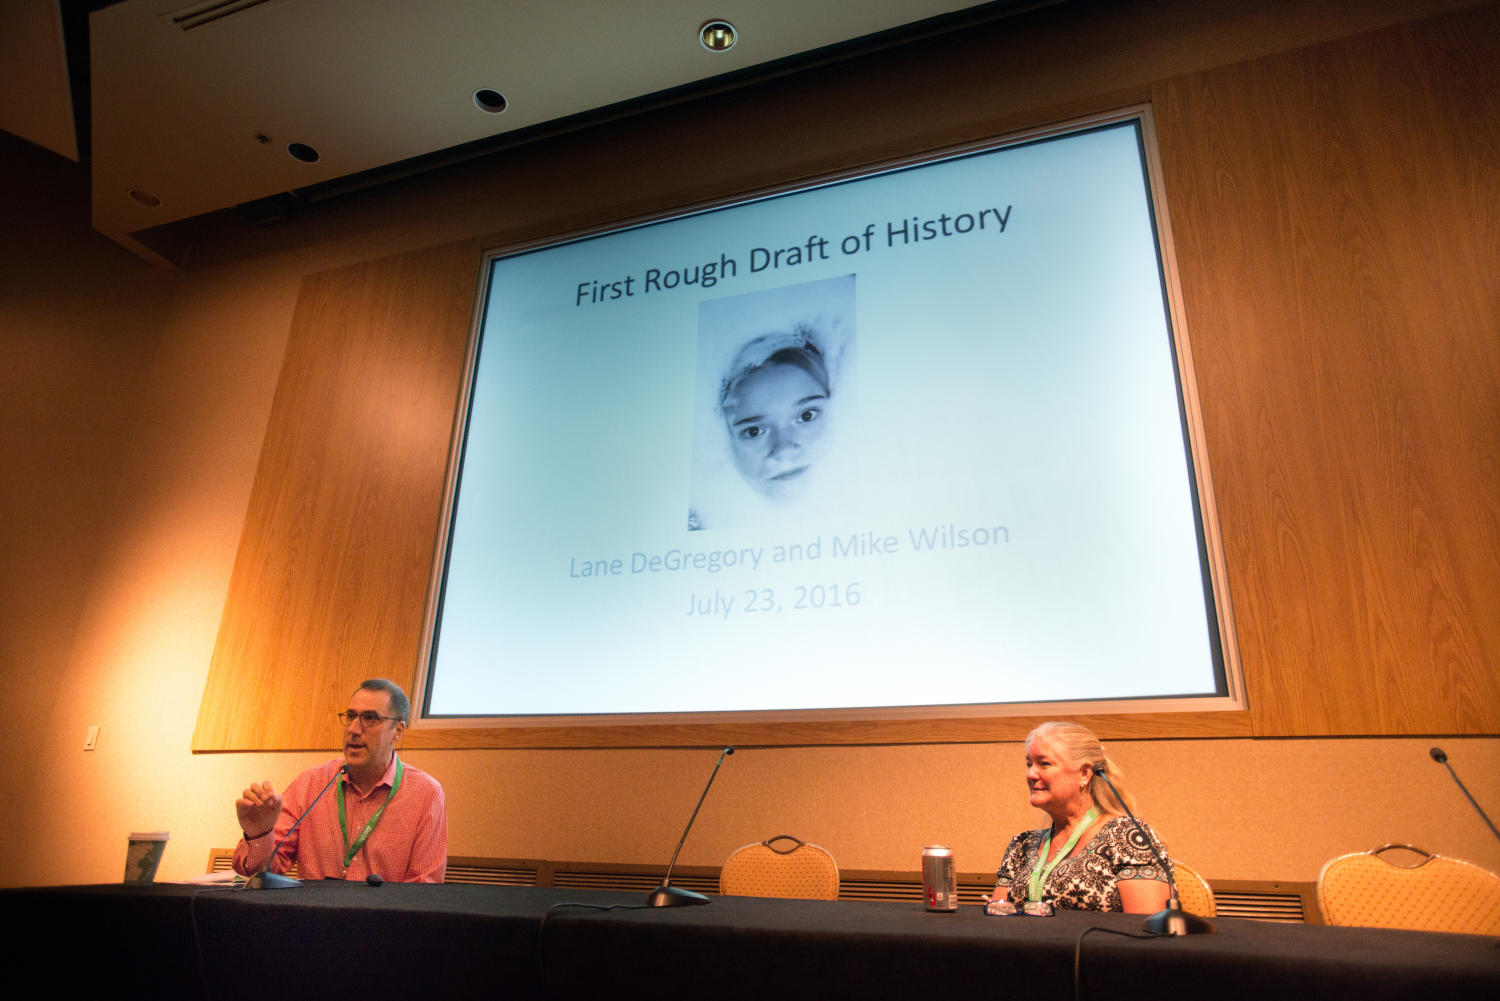 """[Mike Wilson and Lane DeGregory sitting at panelist table], Photograph of Mike Wilson and Lane DeGregory sitting down at the """"First Rough Draft of History"""" panelist table in a conference room. Behind them is a screen that reads """"First Rough Draft of History"""", underneath that is a photo of a face surrounded by bubbles, followed by the words """"Lane DeGregory and Mike Wilson July 23, 2016"""". The panel was held as a part of the Mayborn Literary Nonfiction Conference at the Hilton DFW Lakes Executive Conference Center, Grapevine, TX.,"""